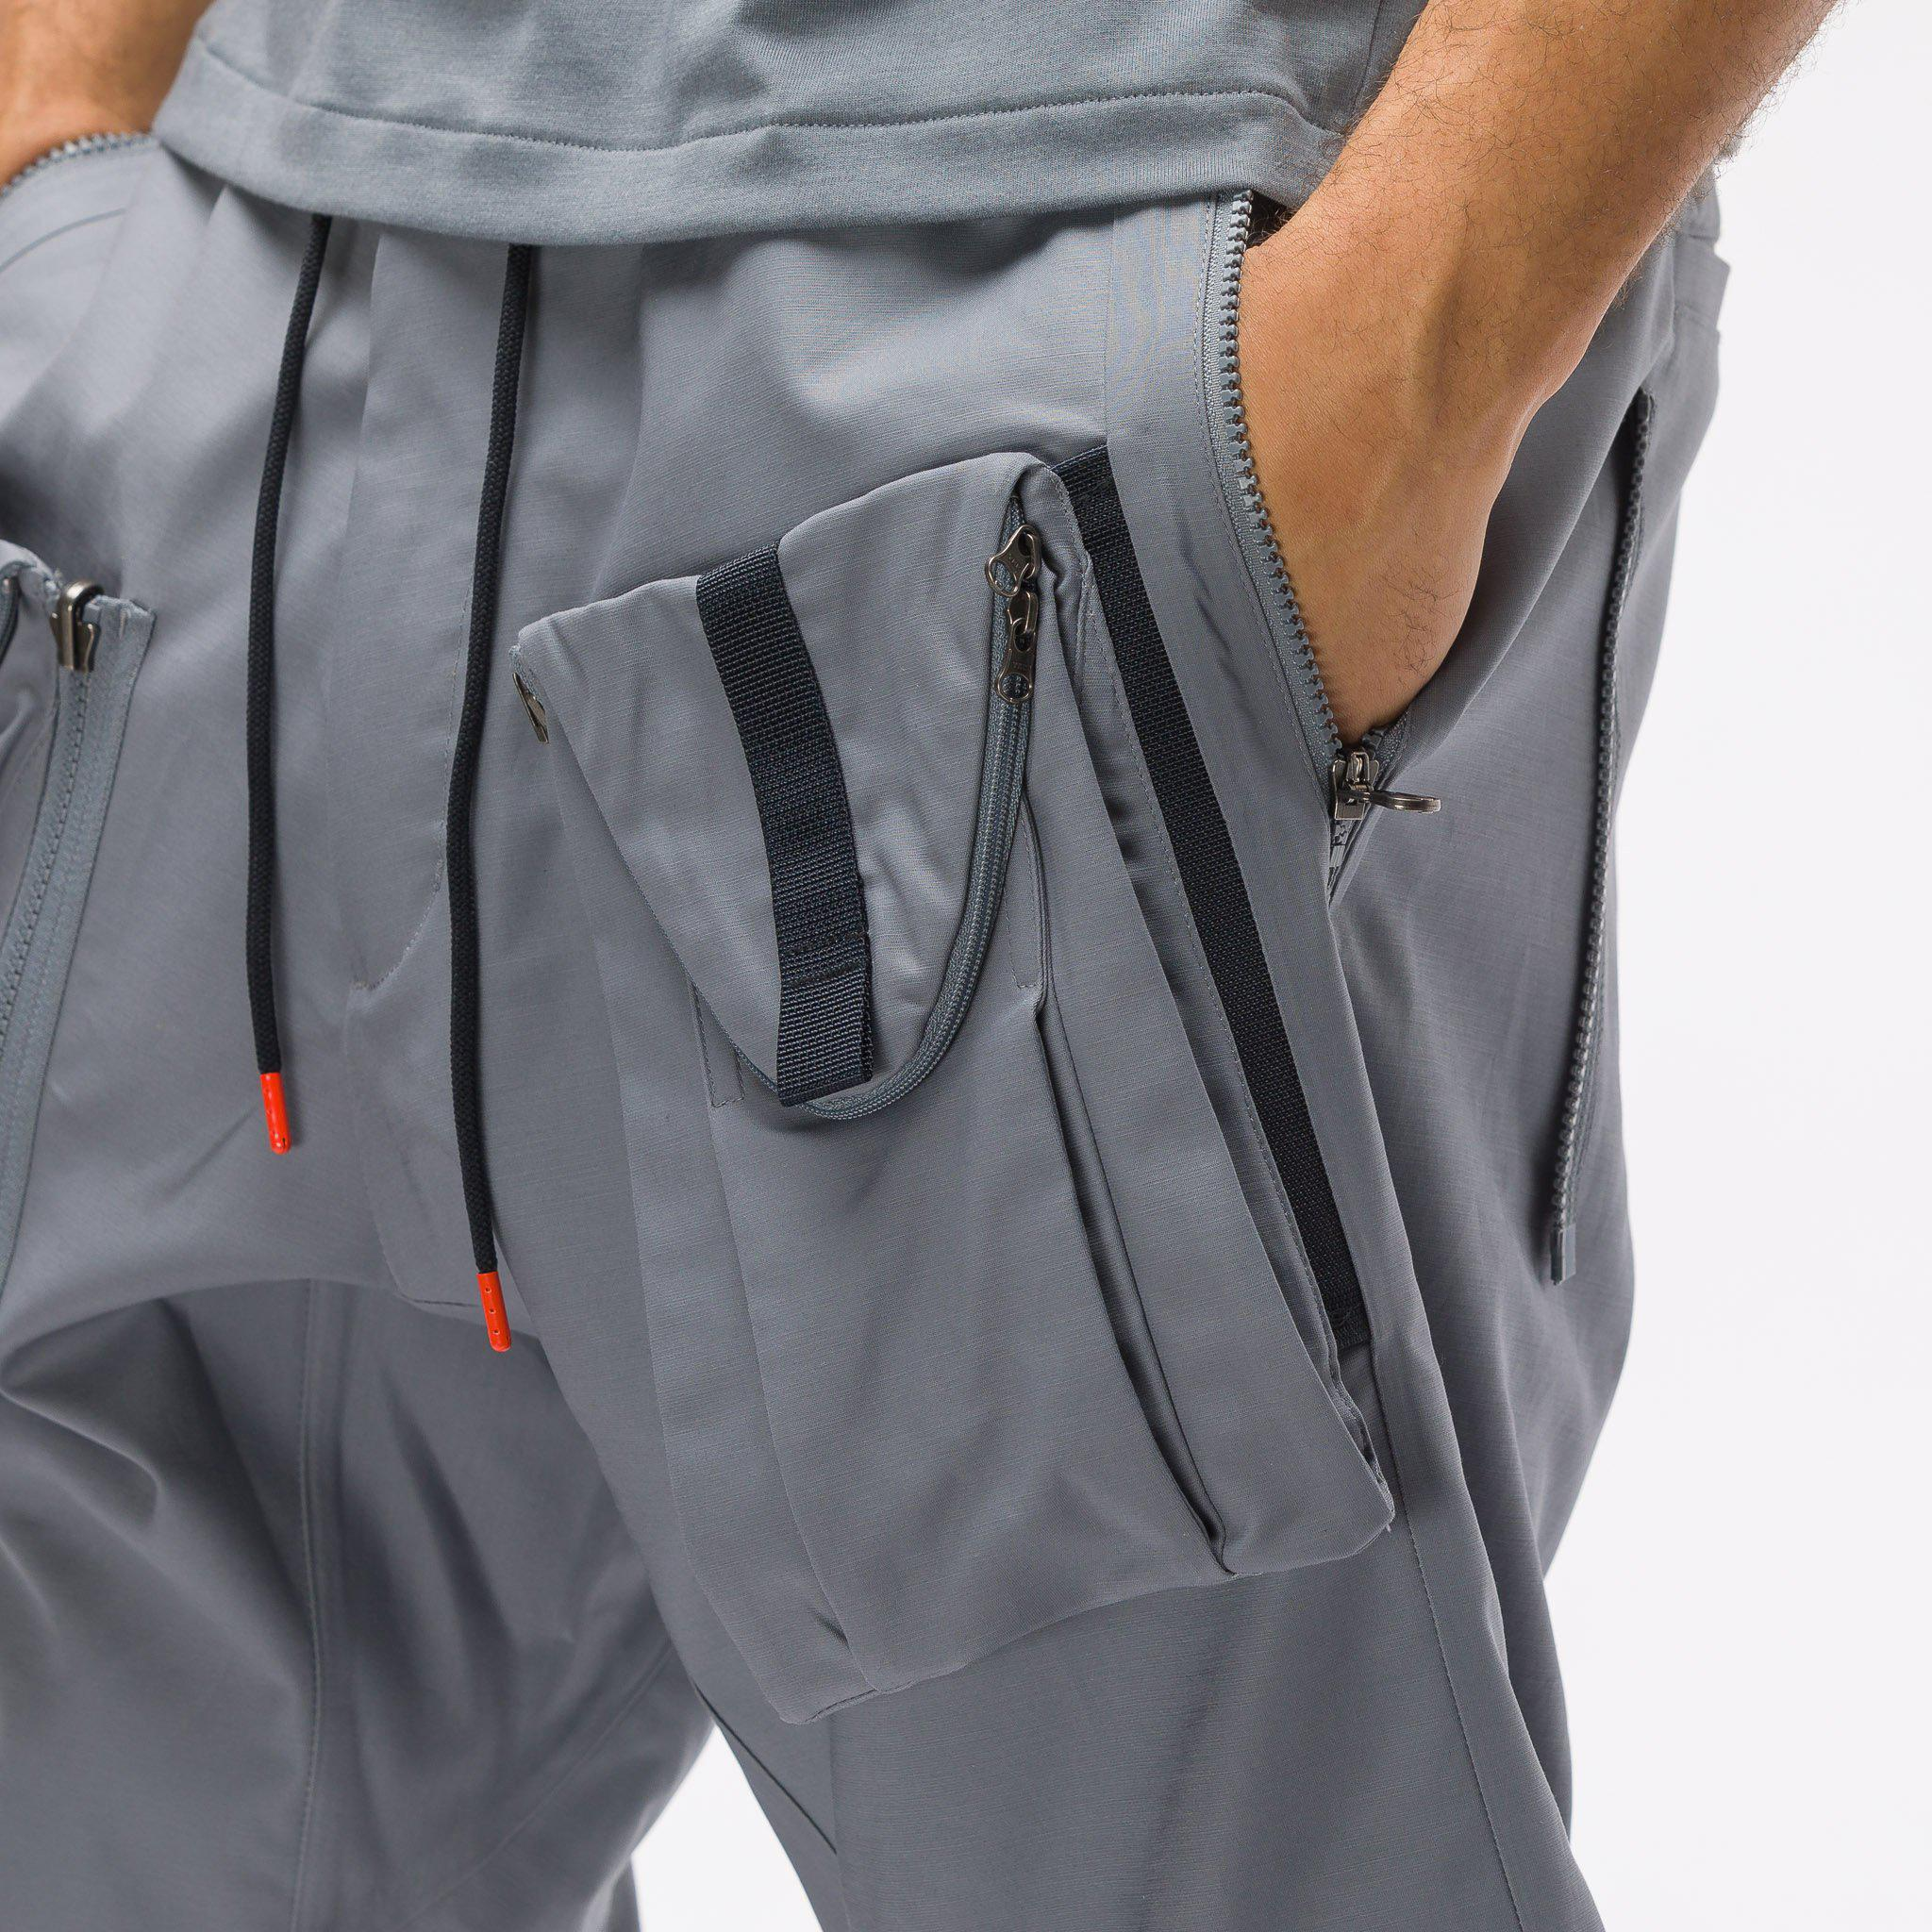 cce952ef53 Nike Acg Deploy Cargo Shorts In Cool Grey in Gray for Men - Lyst